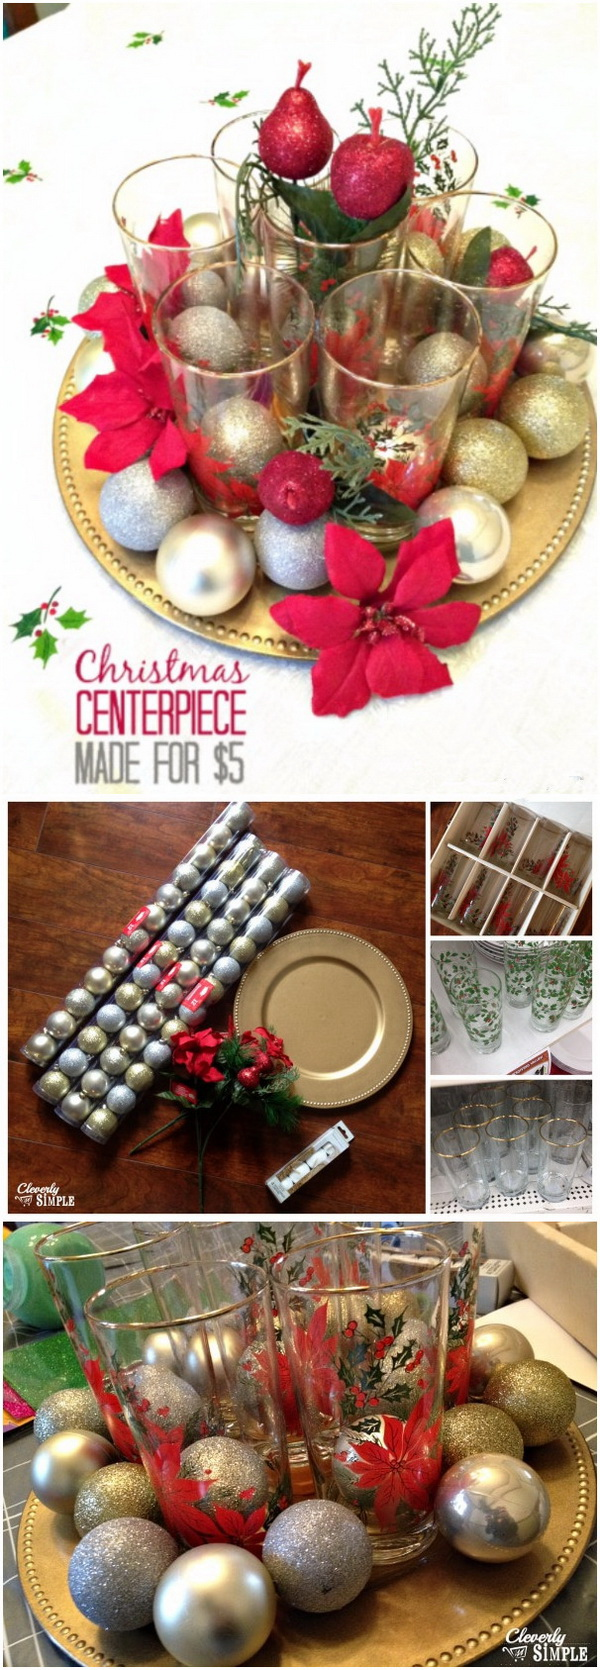 Meaningful Christmas Centerpiece. SUper Easy DIY Table Centerpiece For  Christmas Made With Dollar Store Finds